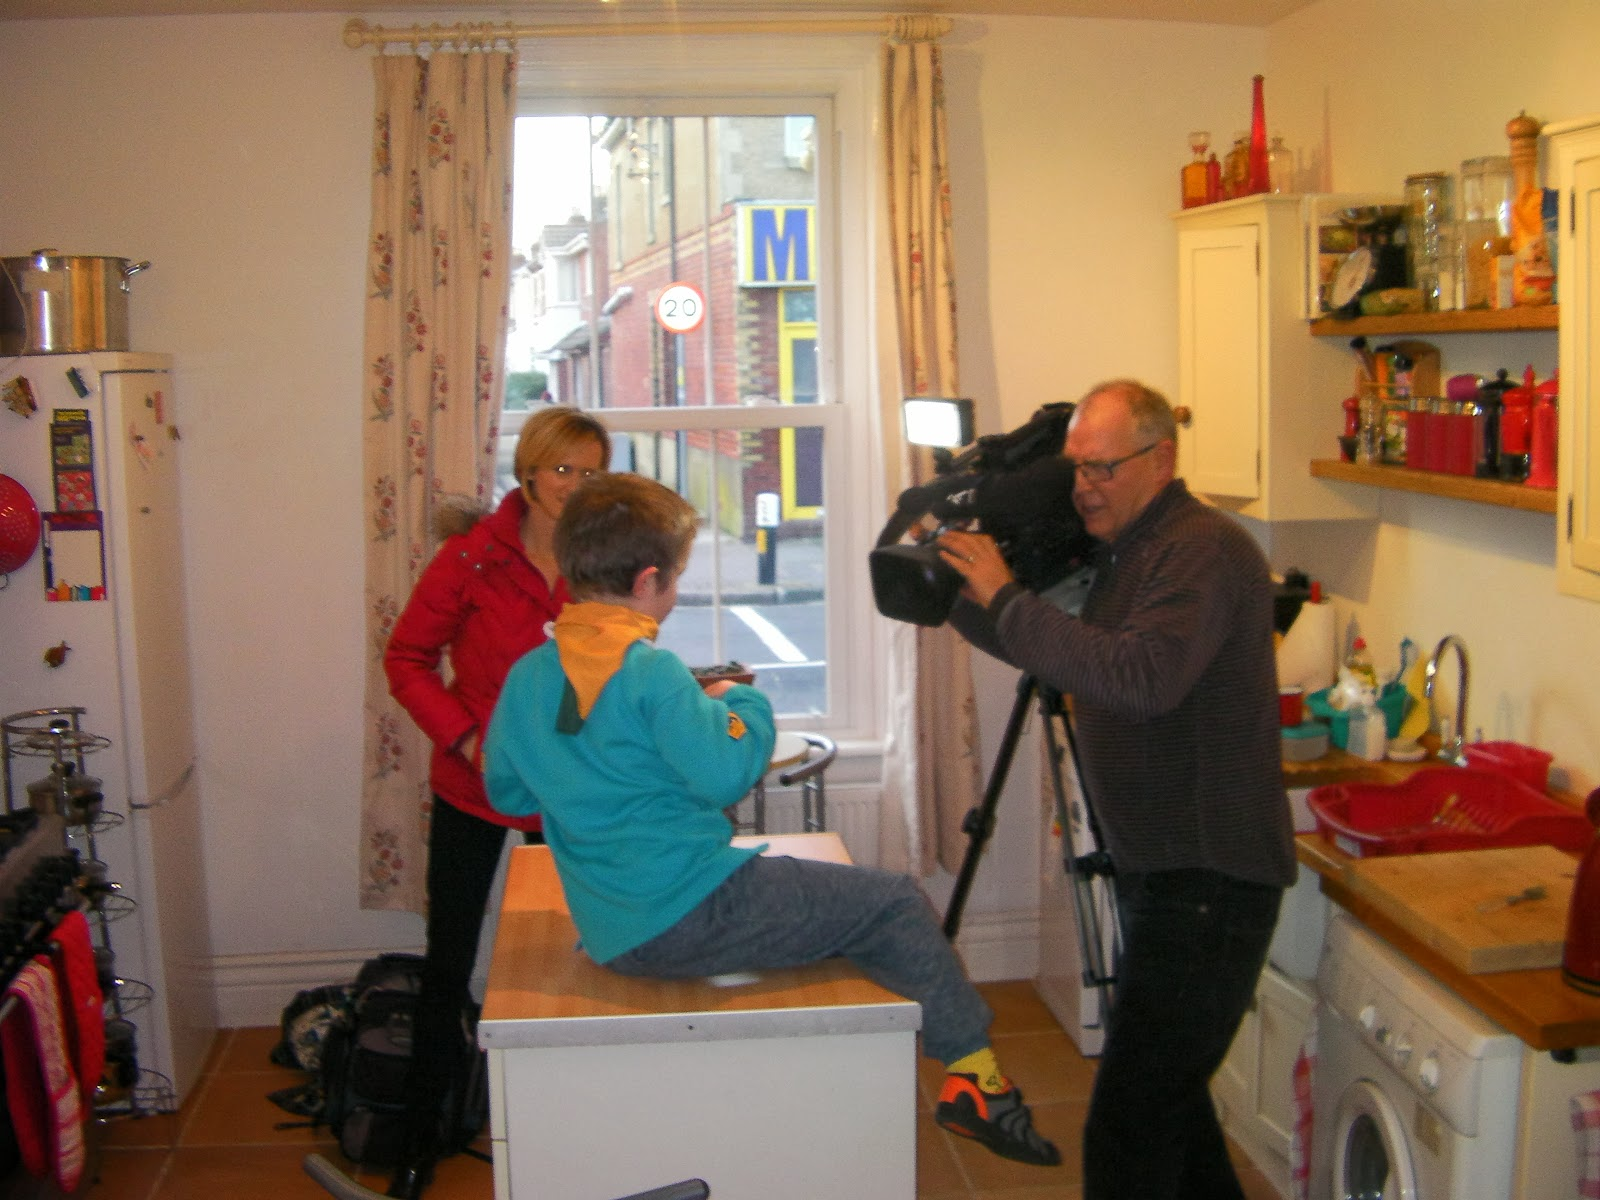 bbc local tv south today doing interview in kitchen